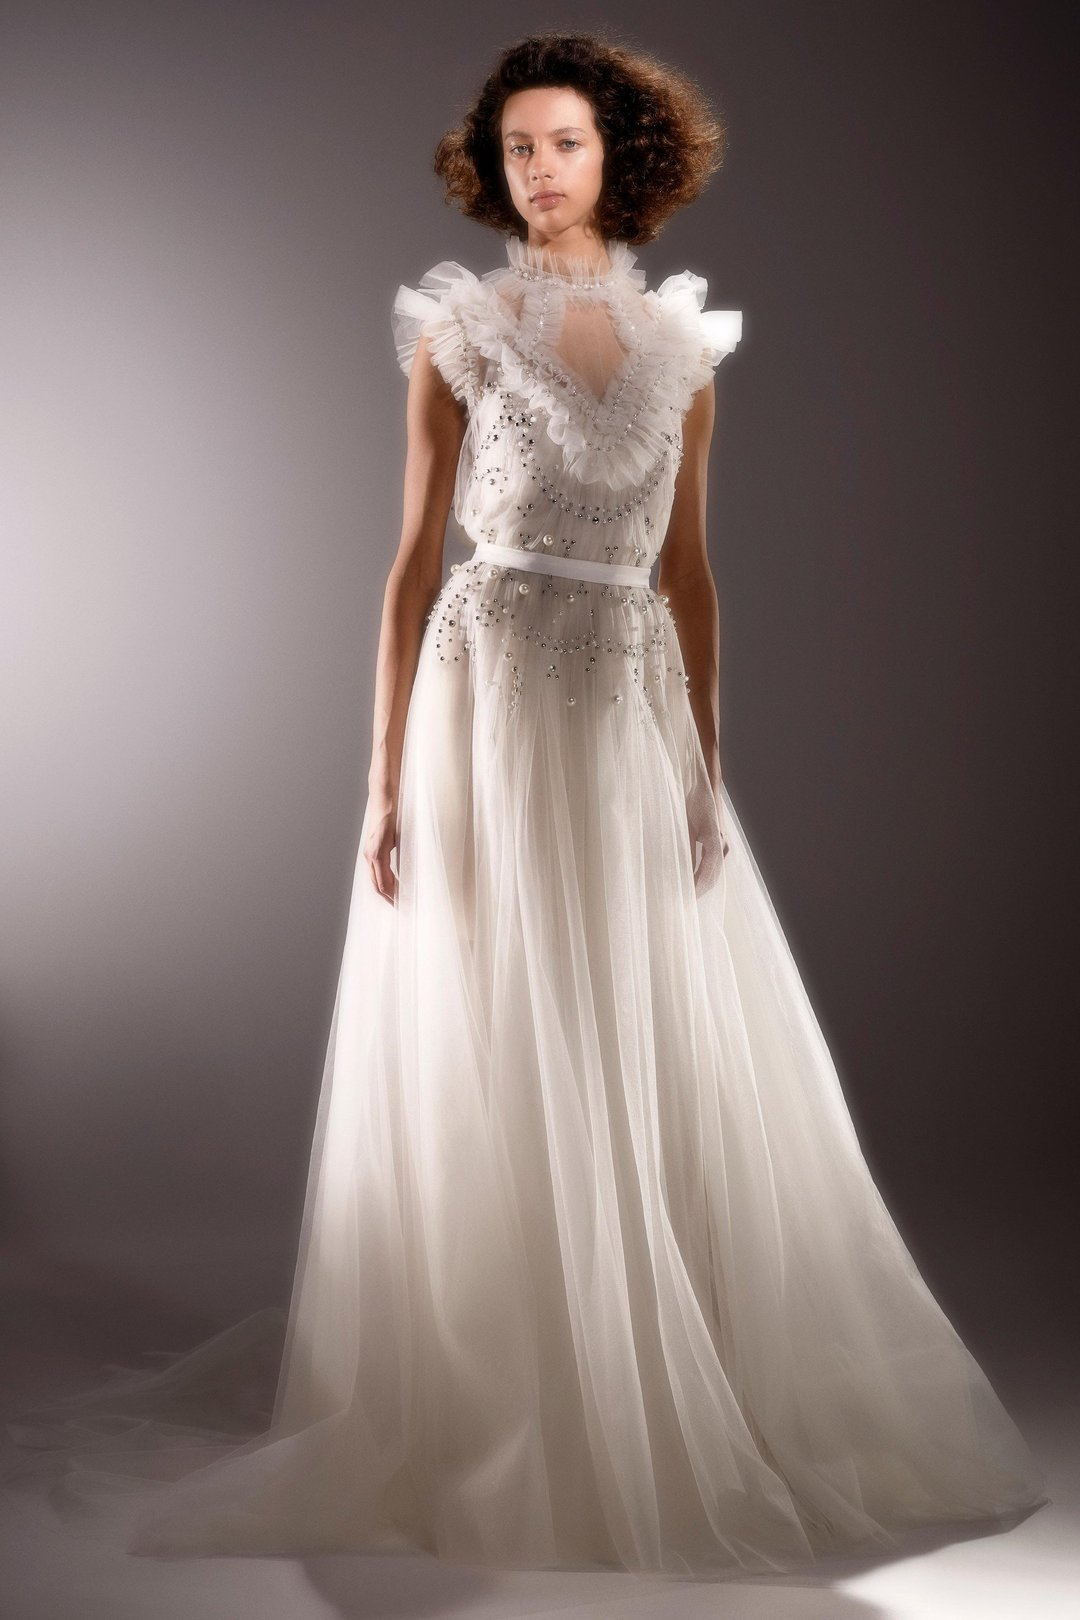 immaculate ethereal tulle gown  dress photo